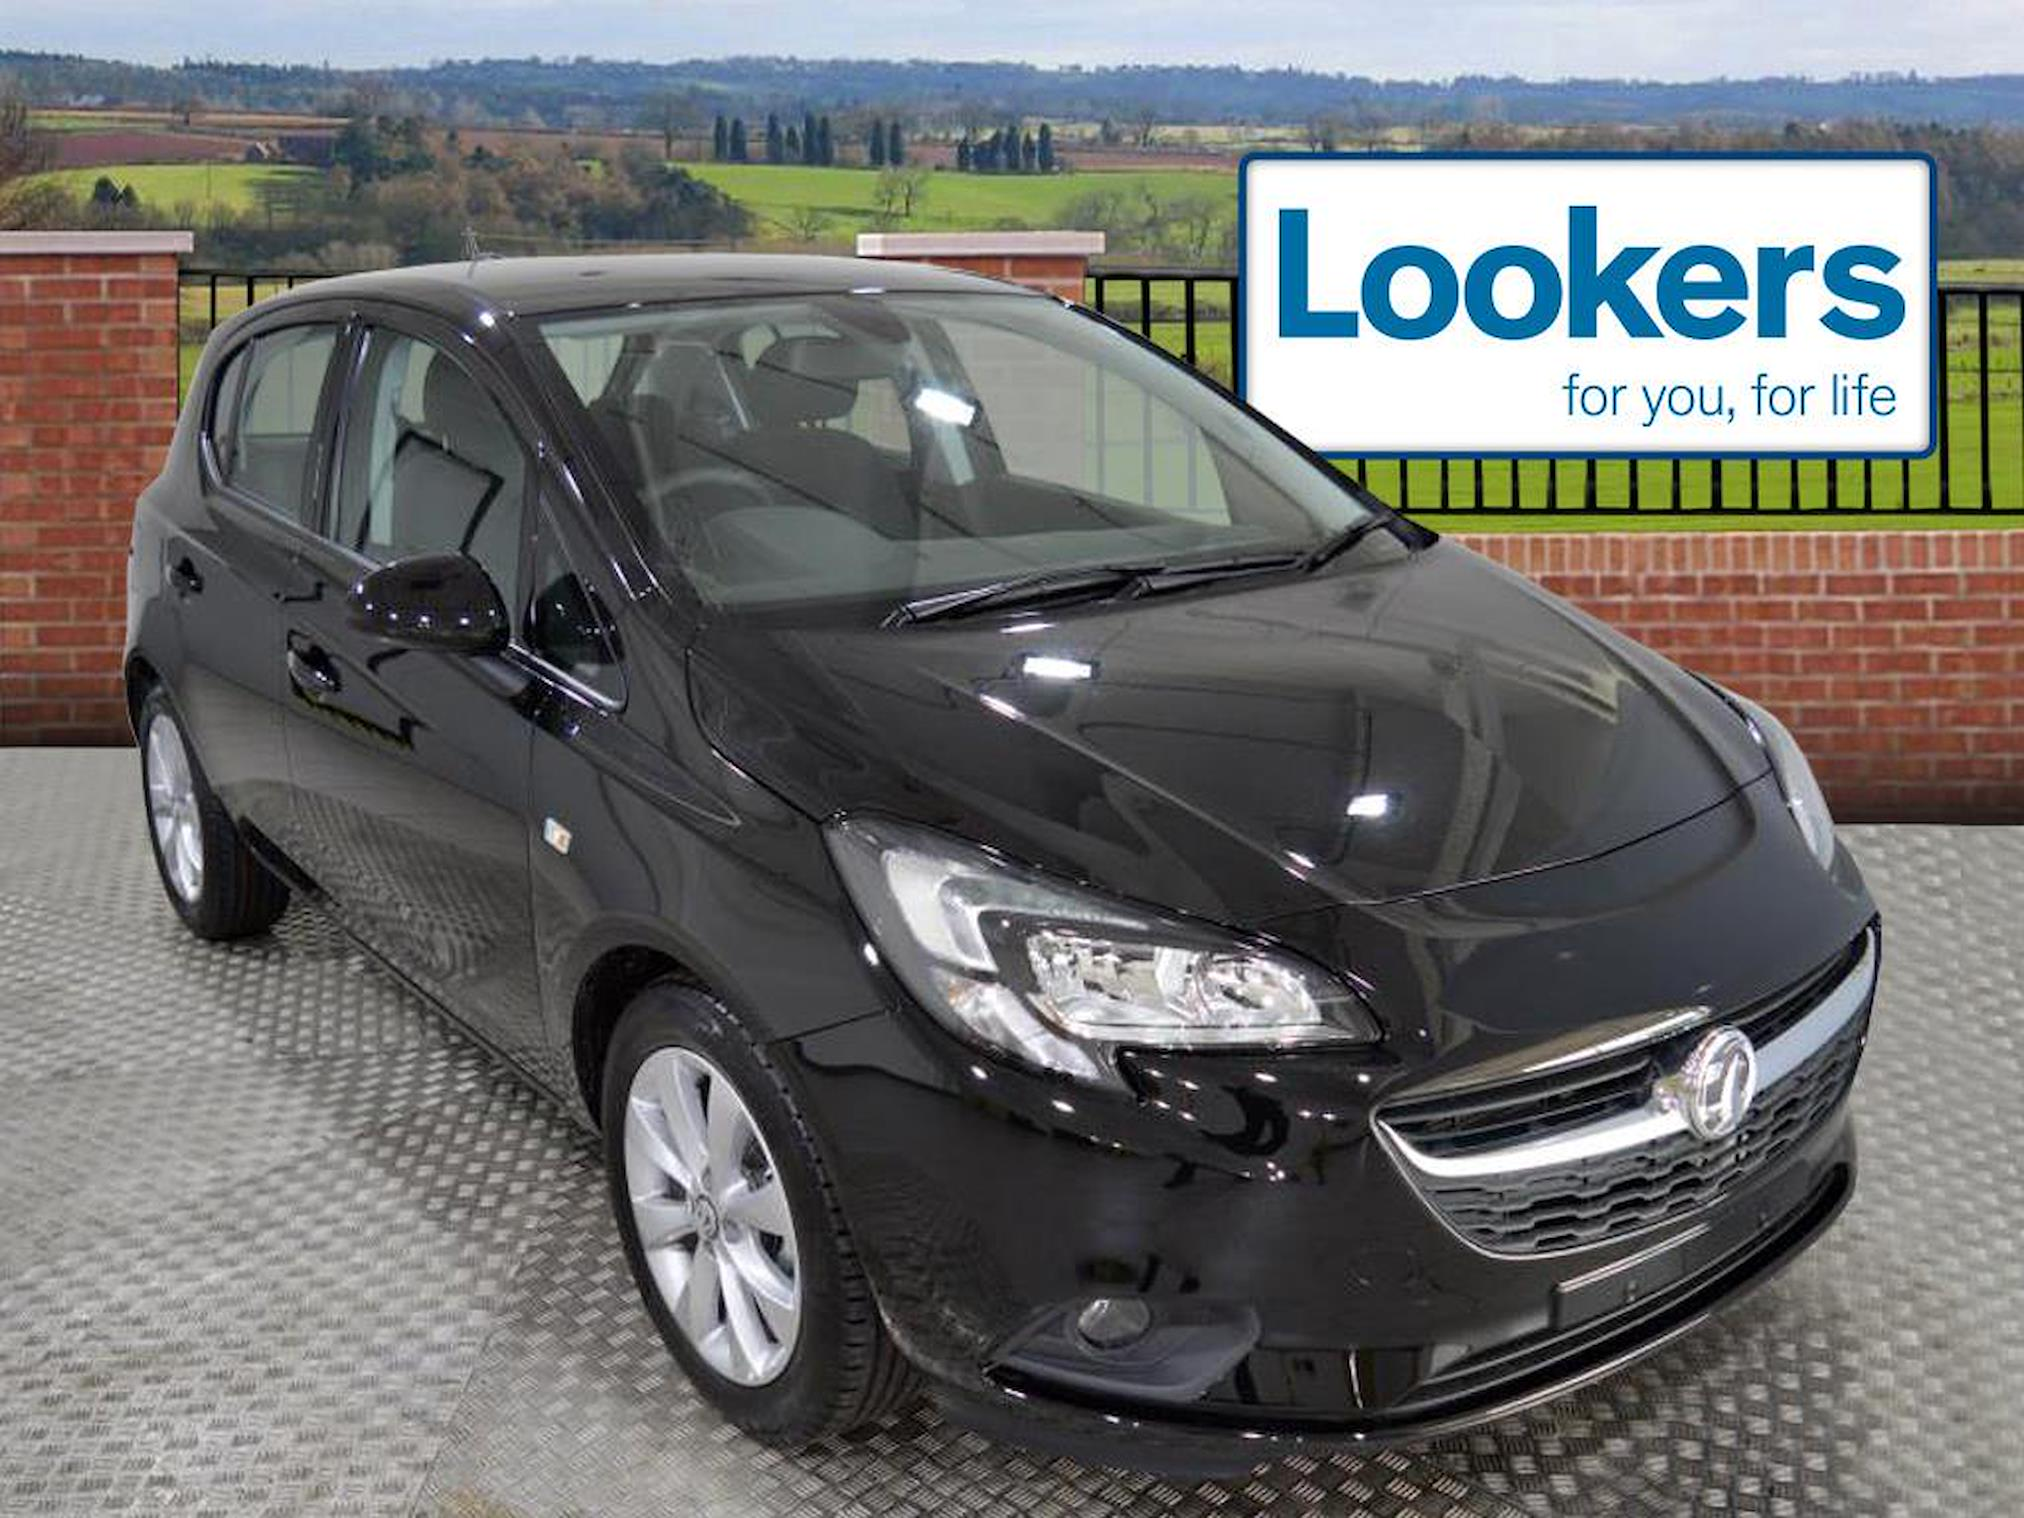 Dealer New CORSA VAUXHALL 1 4 Energy 3Dr [Ac] 2019 | Lookers